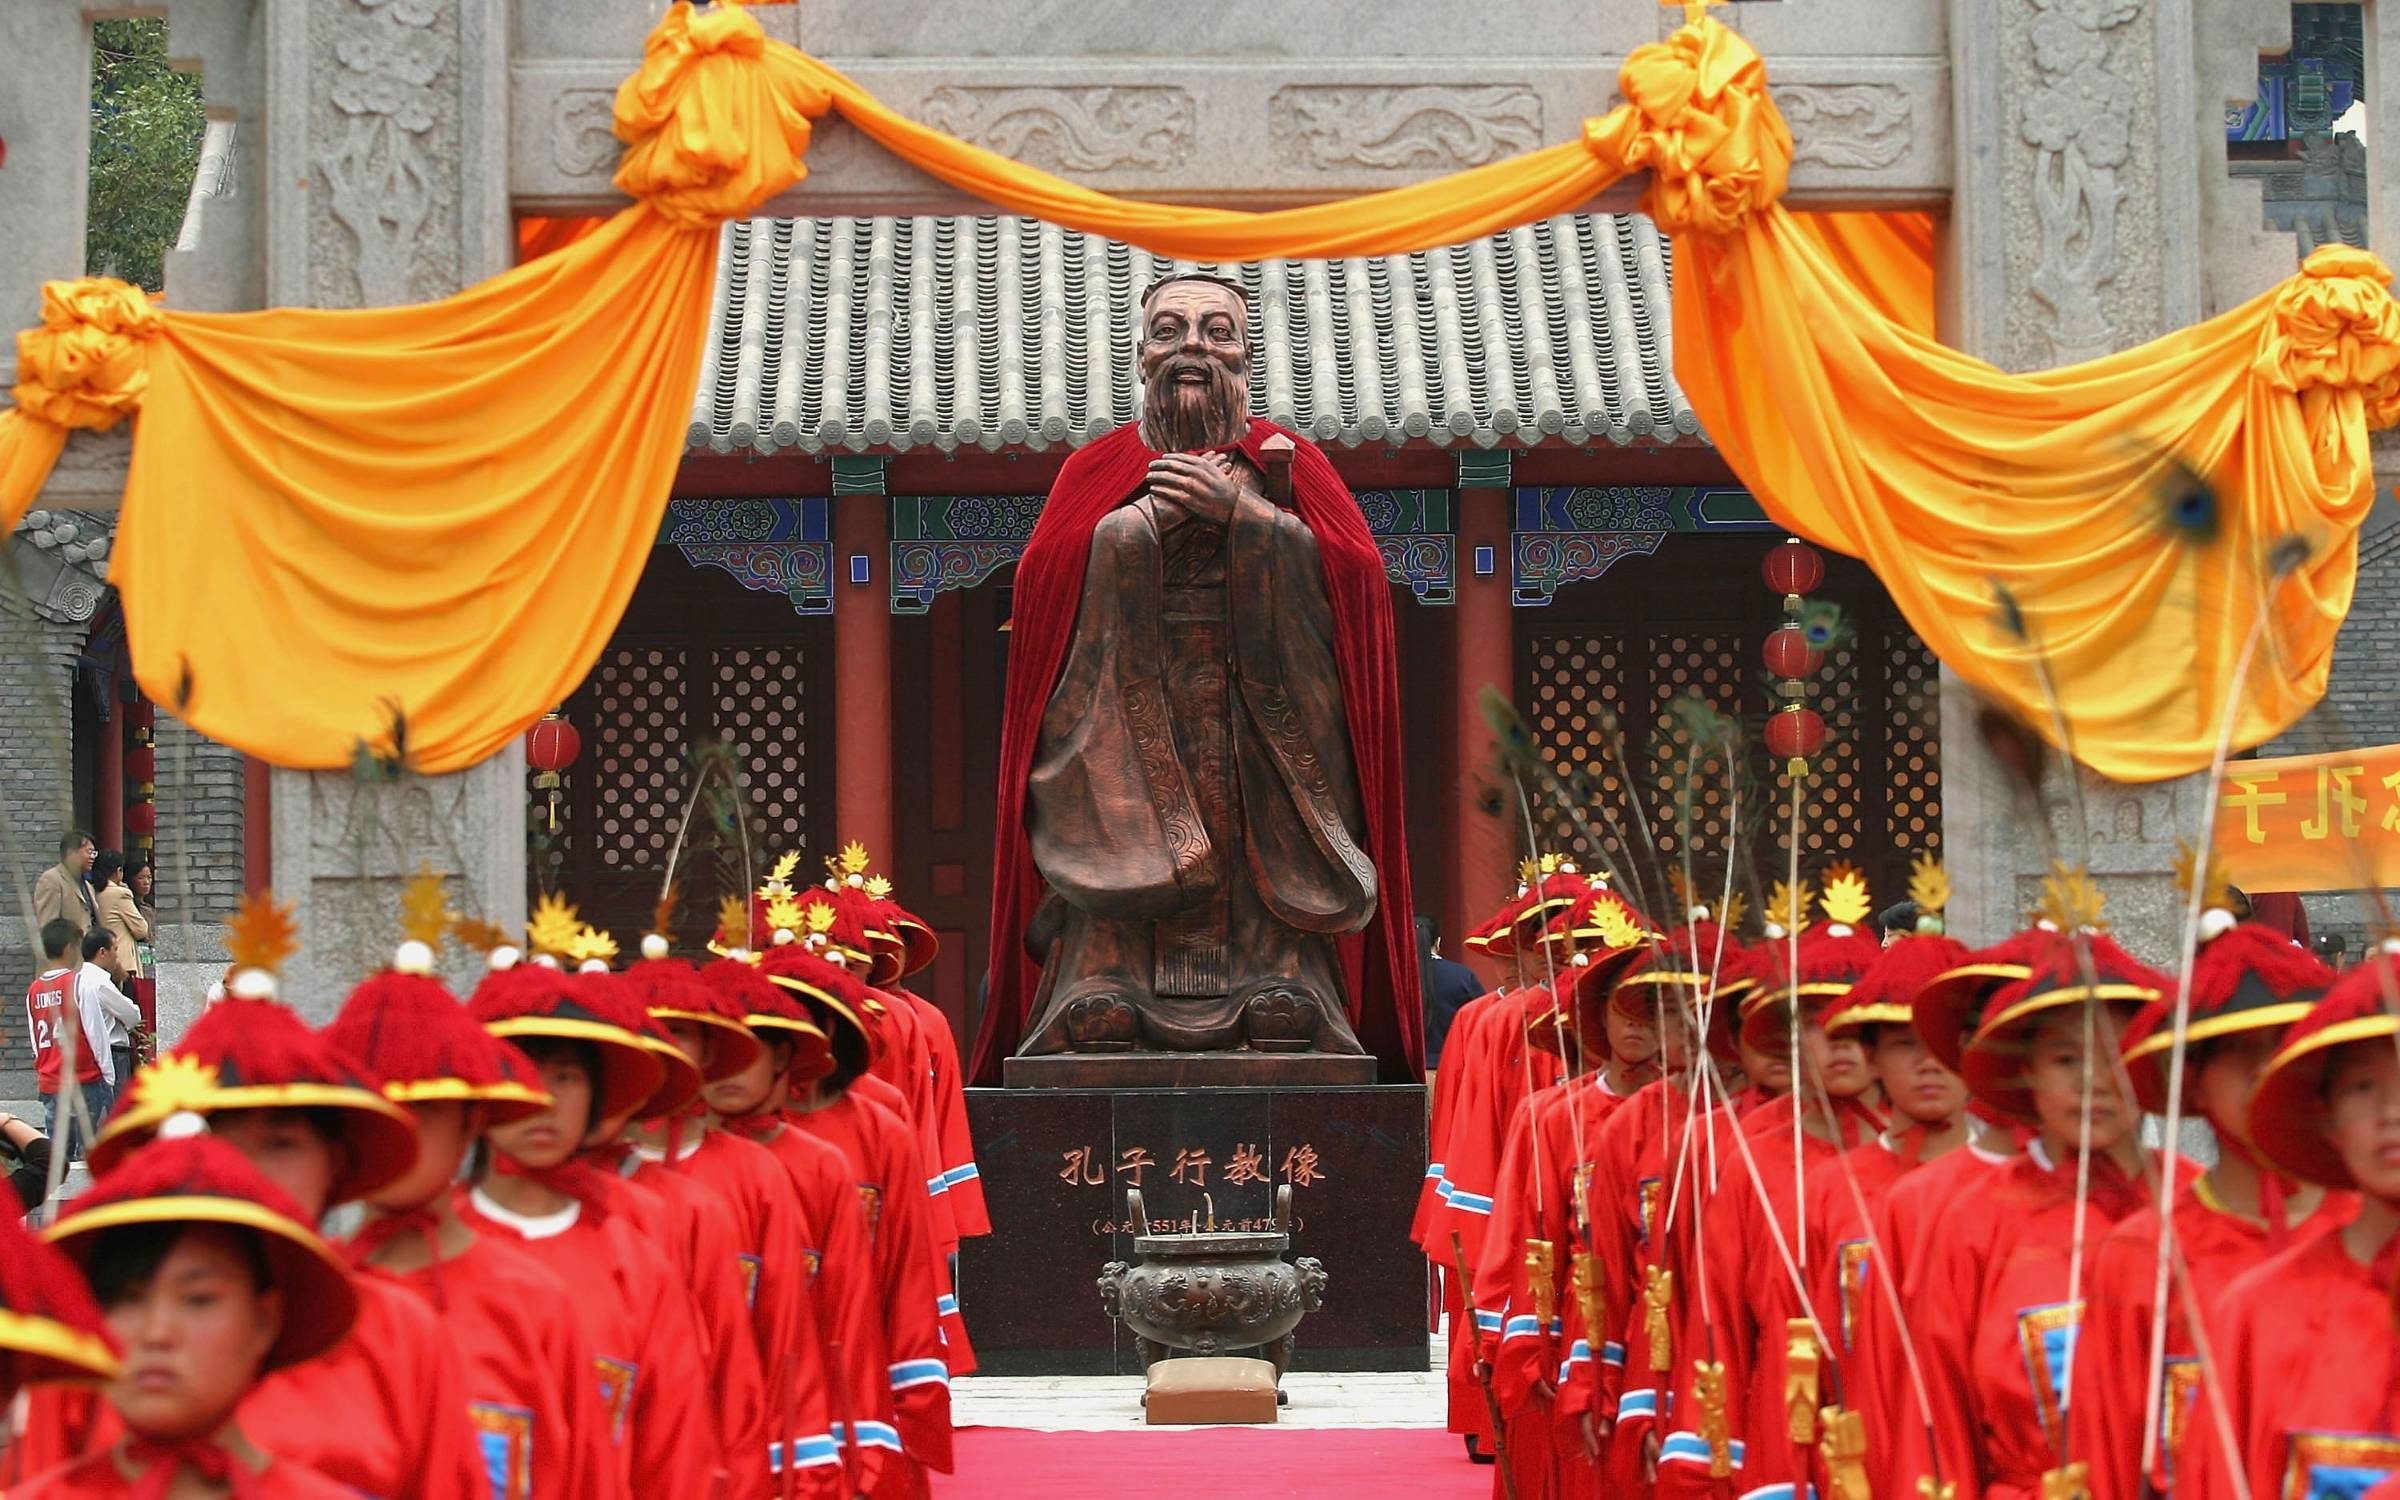 Students dressed in ancient clothes stand in front of the statue of Confucius (551-479 BC), during a ceremony to worship the Chinese philosopher and educator at the Changchun Confucian Temple on September 25, 2005 in Changchun of Jilin Province, China. Credit: China Photos/Getty Images